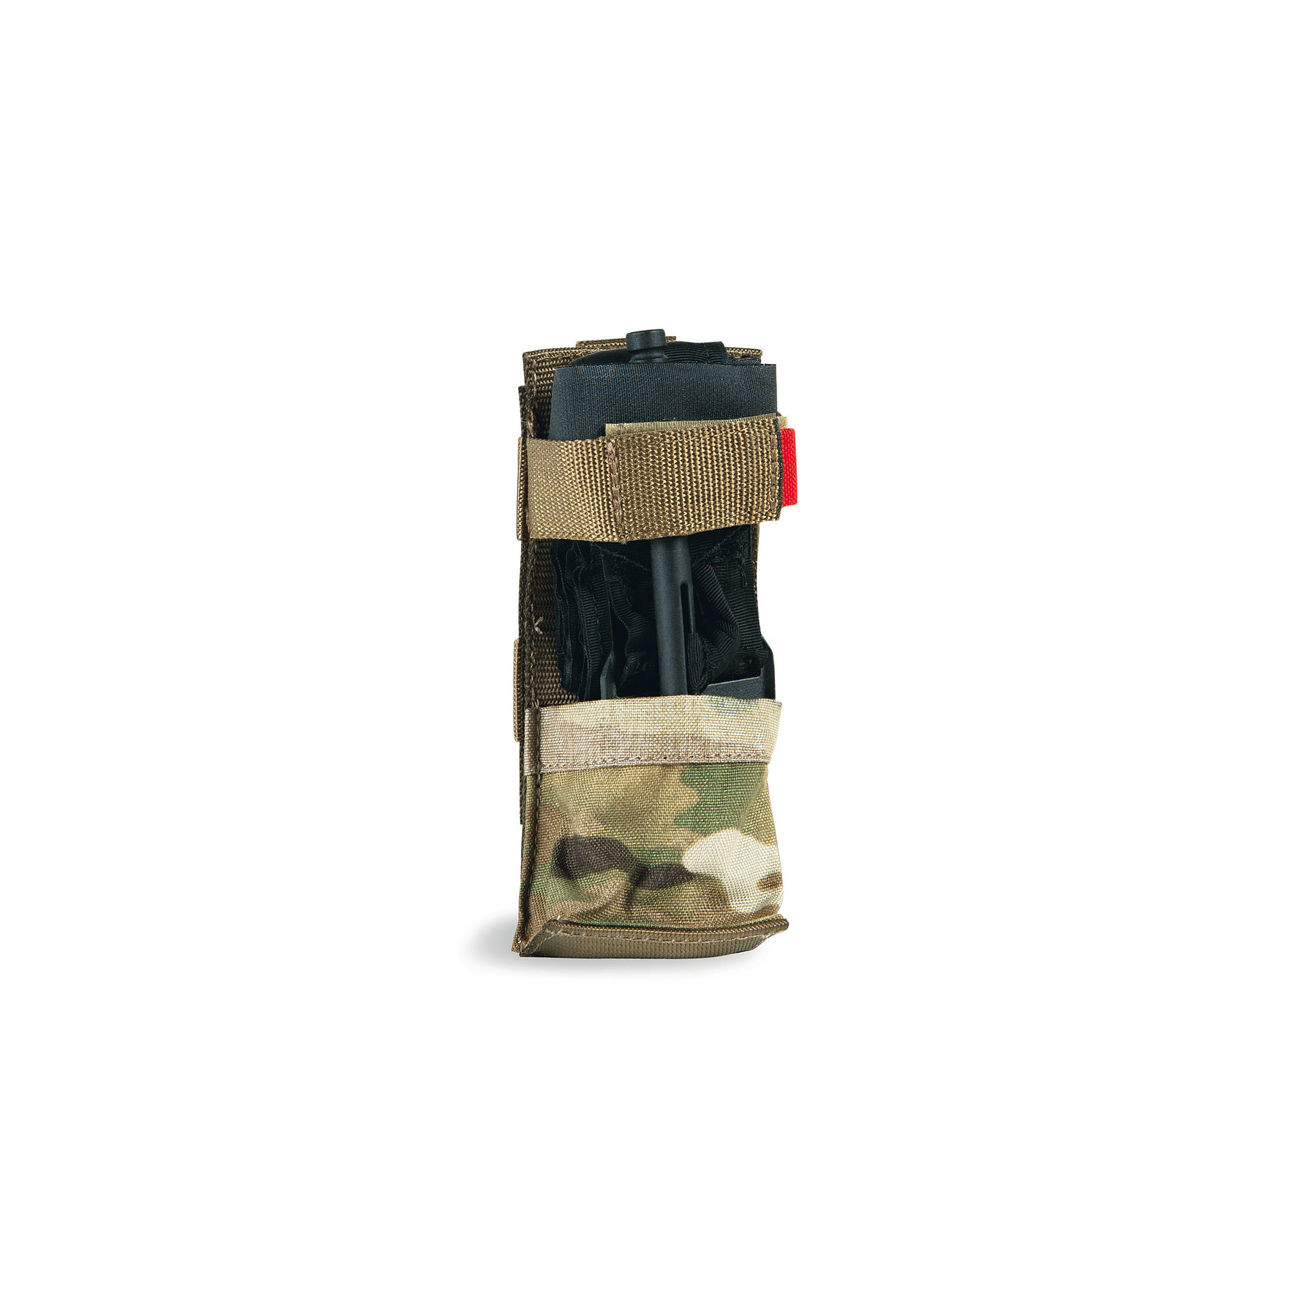 TT Tourniquet Pouch Multicam 2